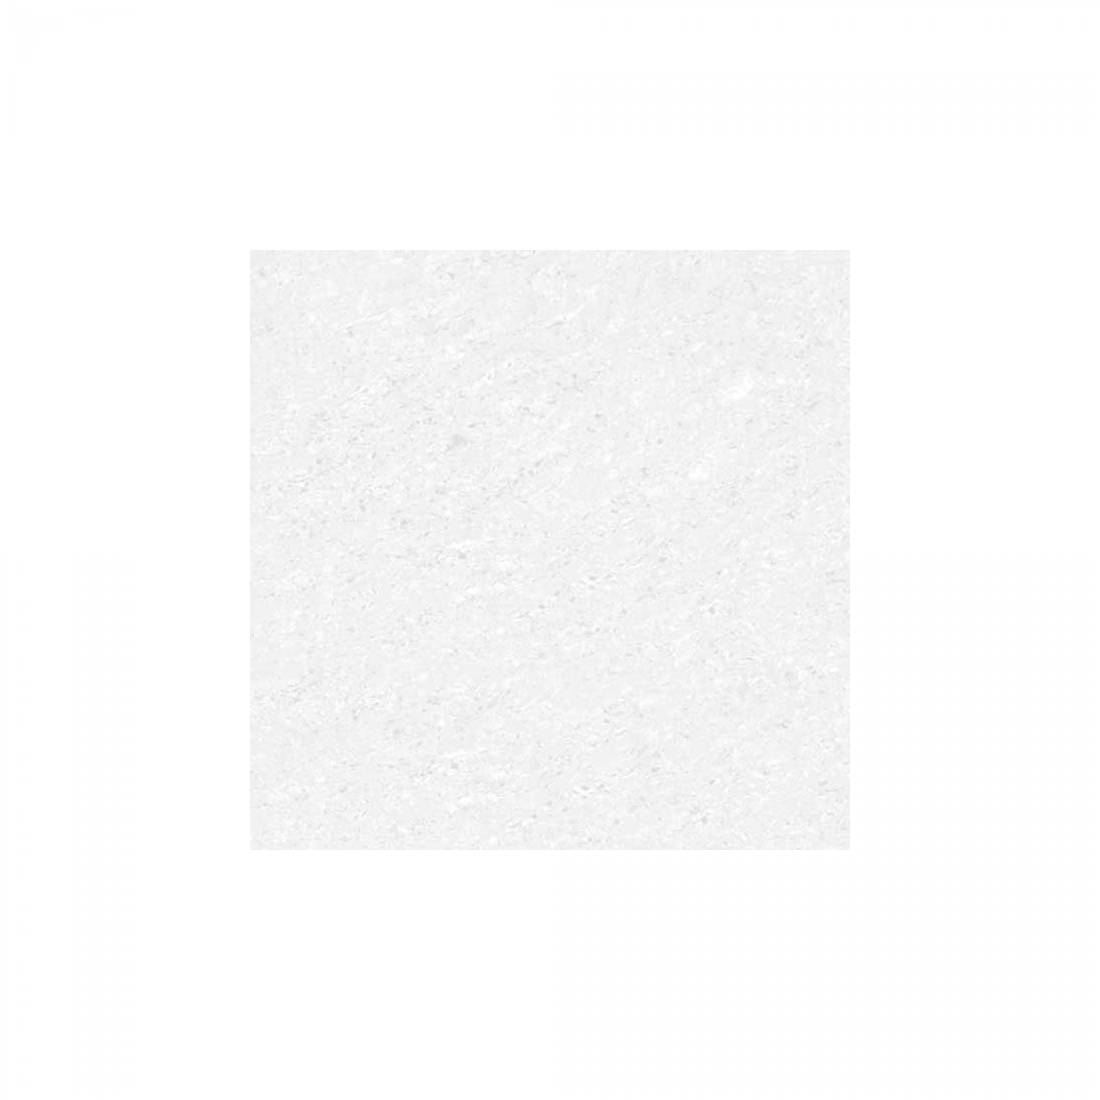 Tropix 60x60 White Polished 1